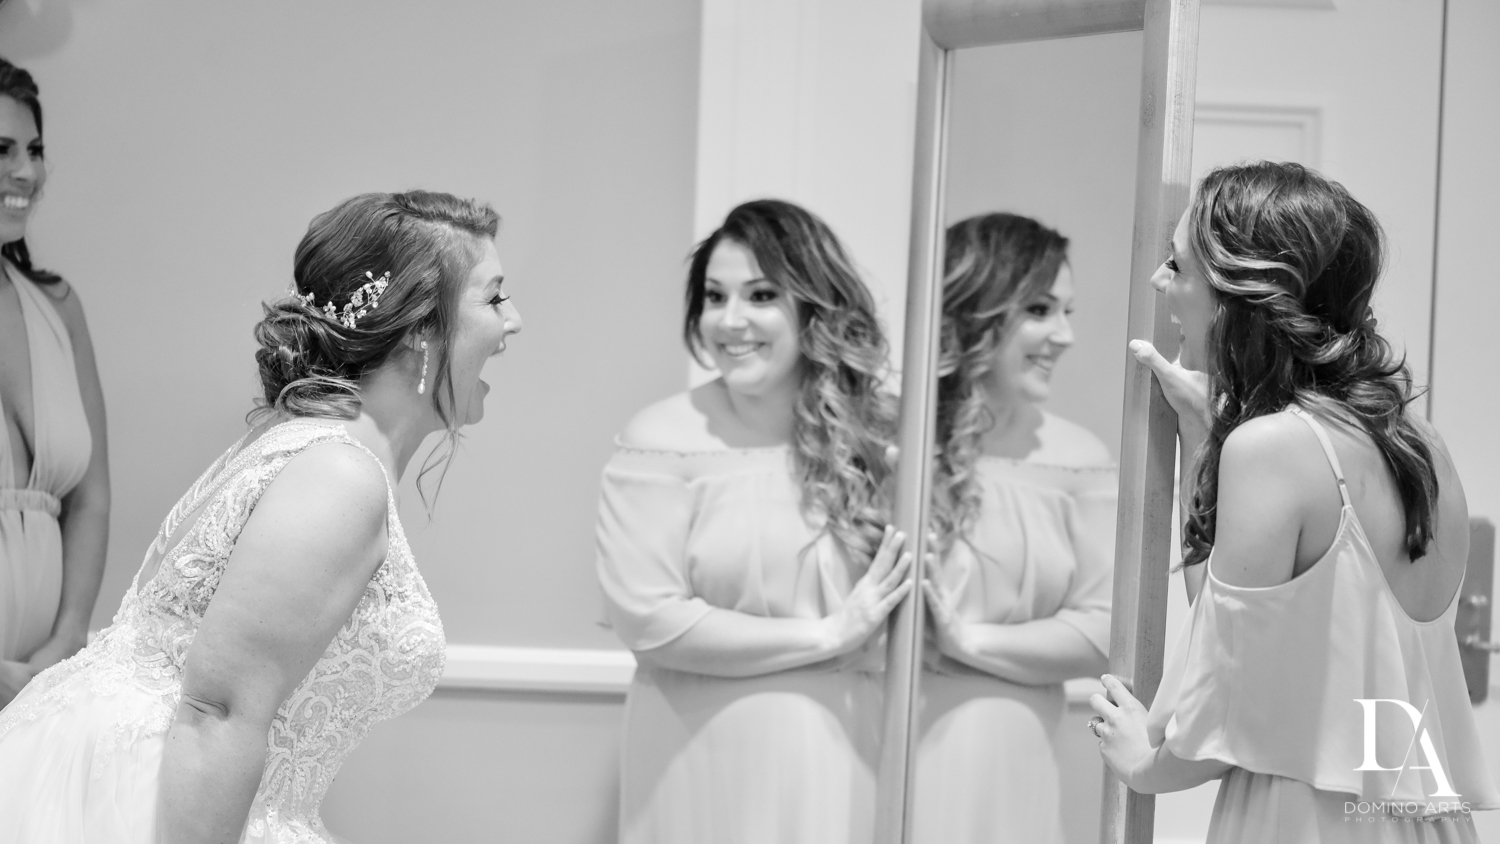 Bride getting ready at Romantic Outdoors Wedding at Woodfield Country Club in Boca Raton, Florida